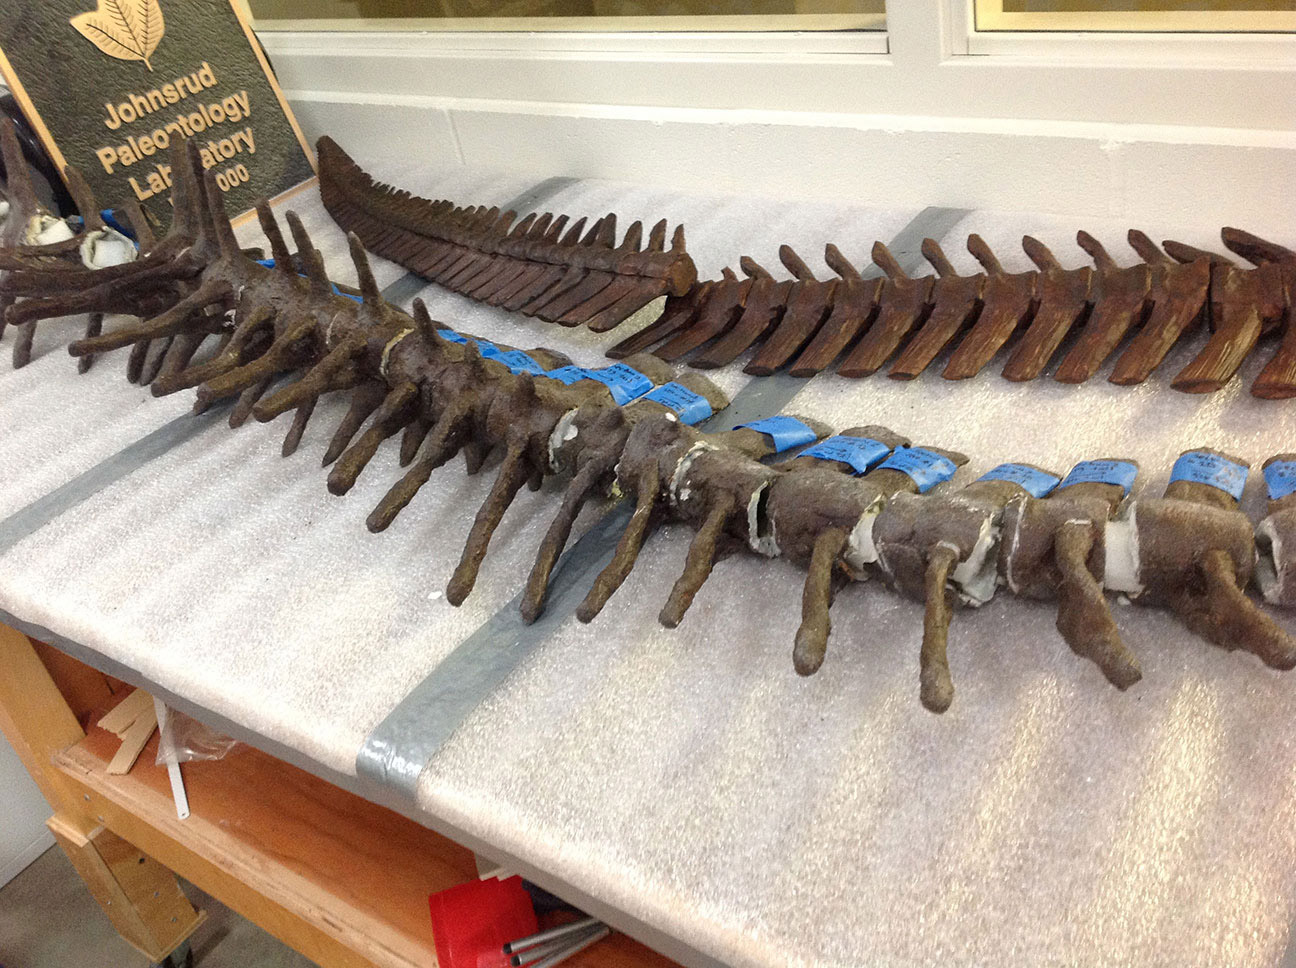 Some pieces are completely replaced for exhibit to protect the fossil from damage. This Mosasaur backbone will be completely replaced by carefully sculpted foam pieces so that the fossil can be preserved. The vertebrae to the rear of the photo are sculpted from foam. The vertebrae in the front of the photo are actual fossils.